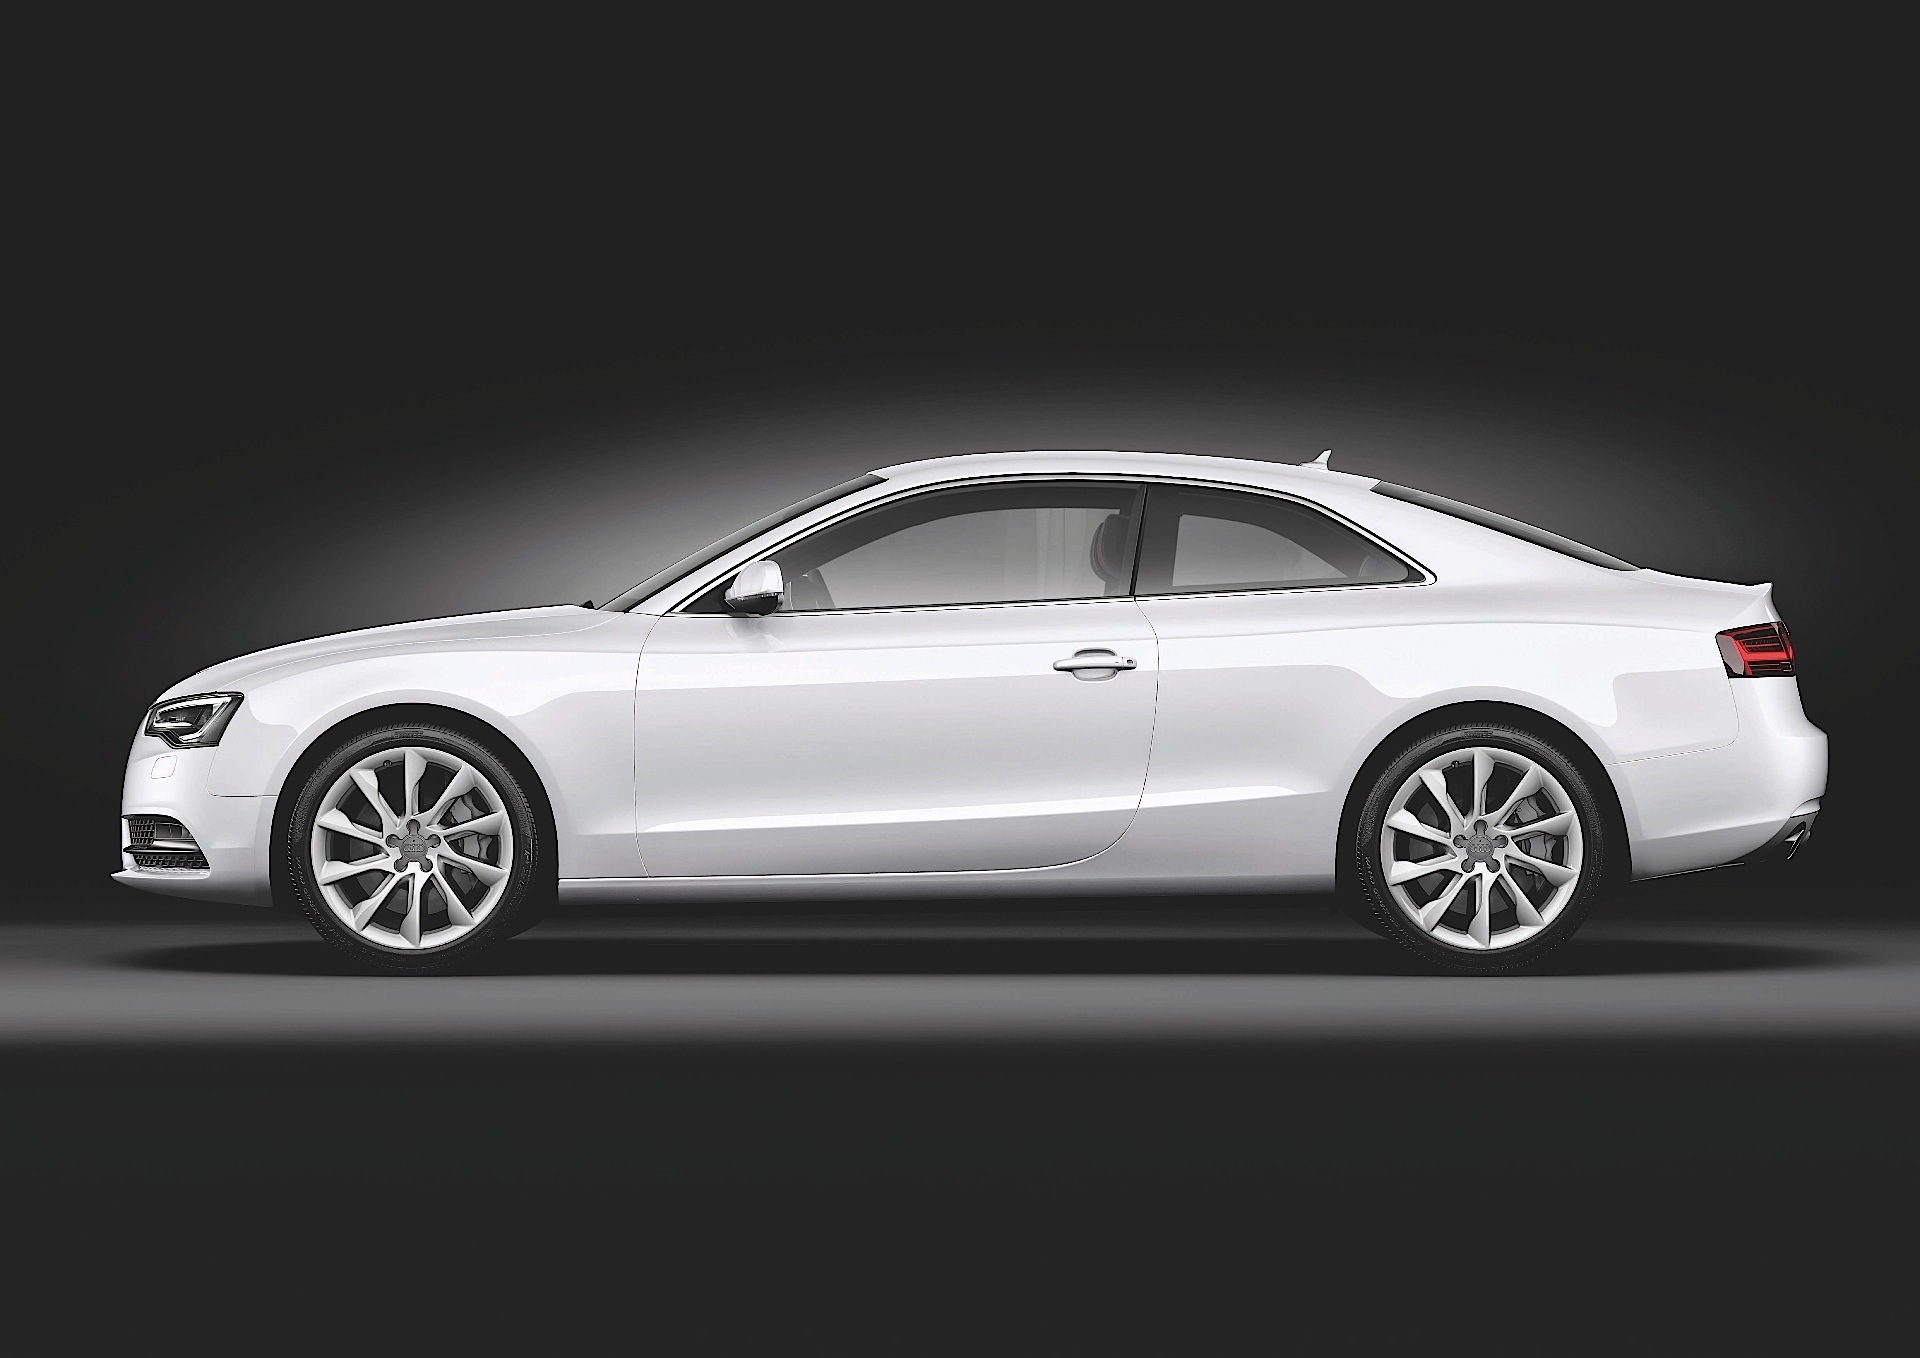 Walter da Silva announced Audi 2007 A5 Coupe as the best 2007' design creature #6